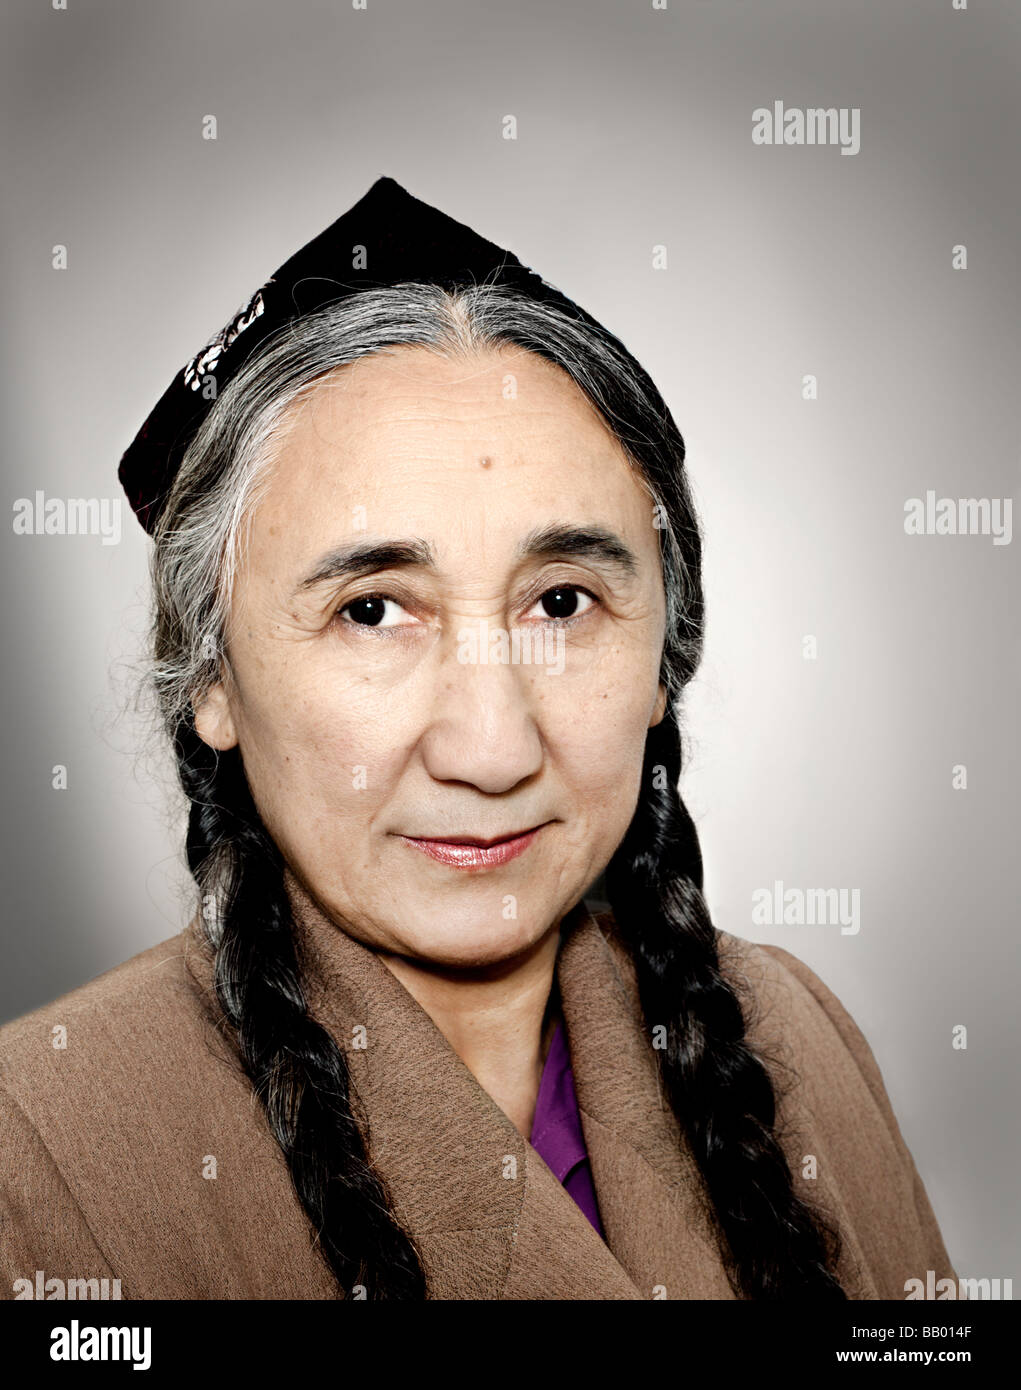 Rebiya Kadeer is a political activist and spokesperson for the Uyghur people, an oppressed Muslim minority in China. - Stock Image